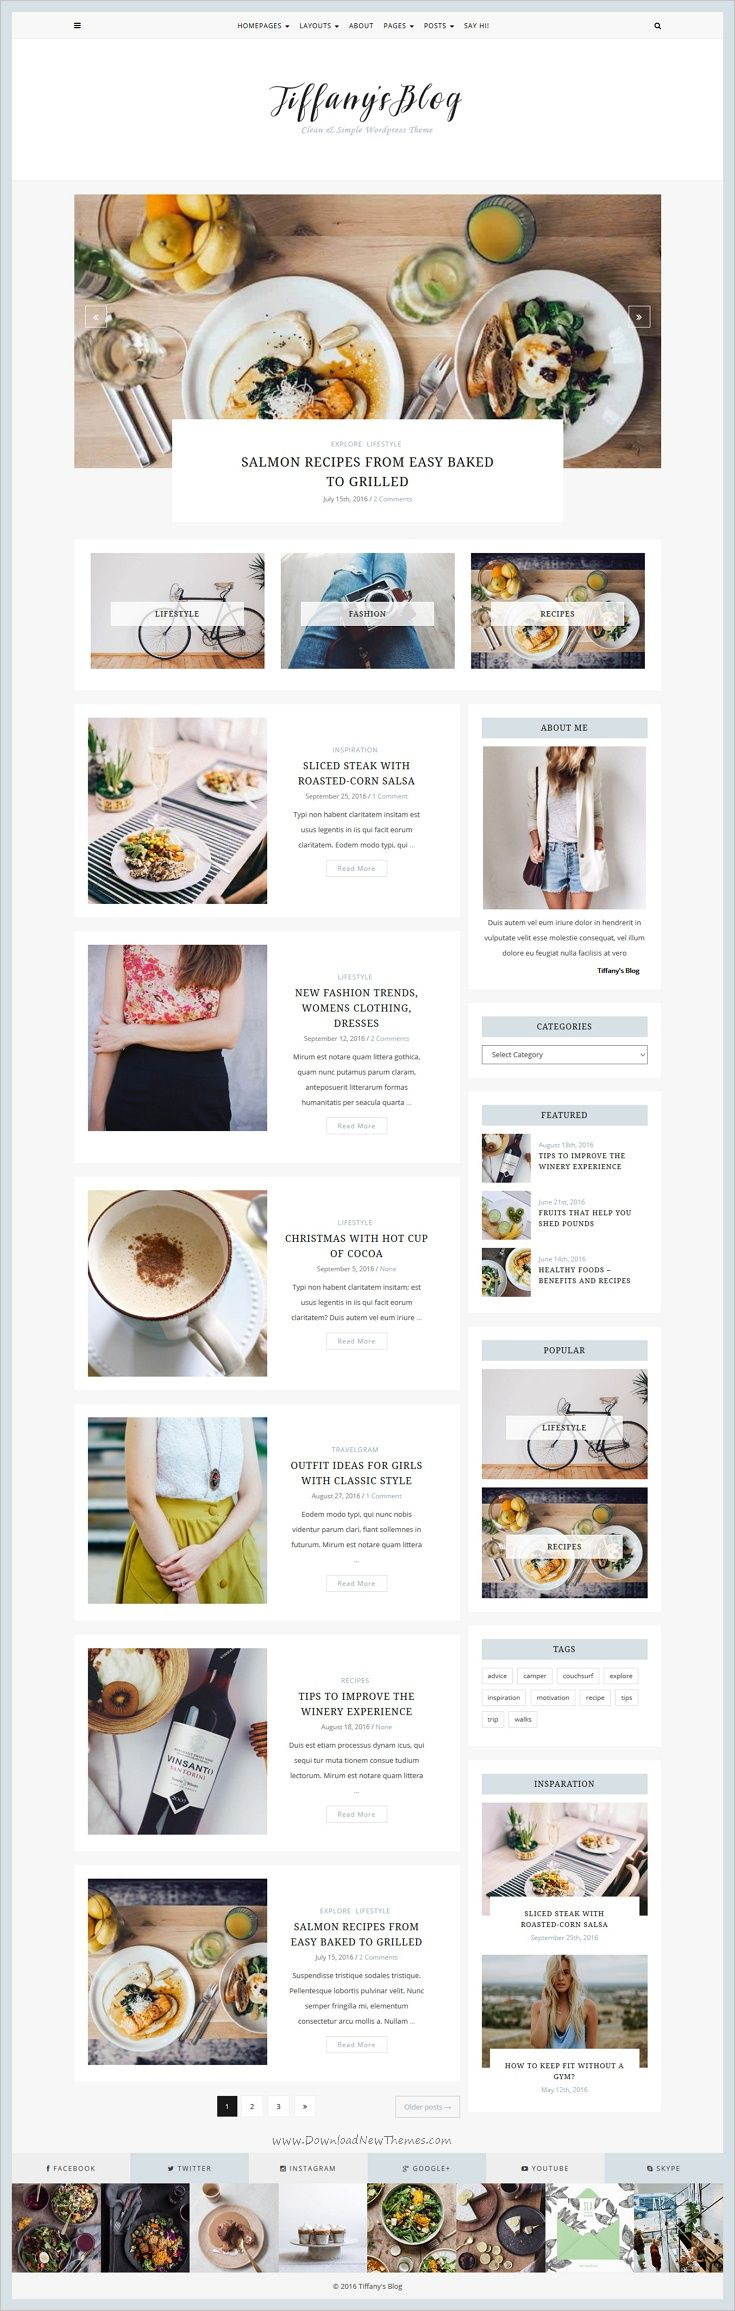 Tiffany is a minimal and clean #WordPress #Blog theme suitable for any kind of personal, #food, travel or photography blogging website download now➩ https://themeforest.net/item/tiffany-clean-and-simple-wordpress-blog-theme/18137210?ref=Datasata